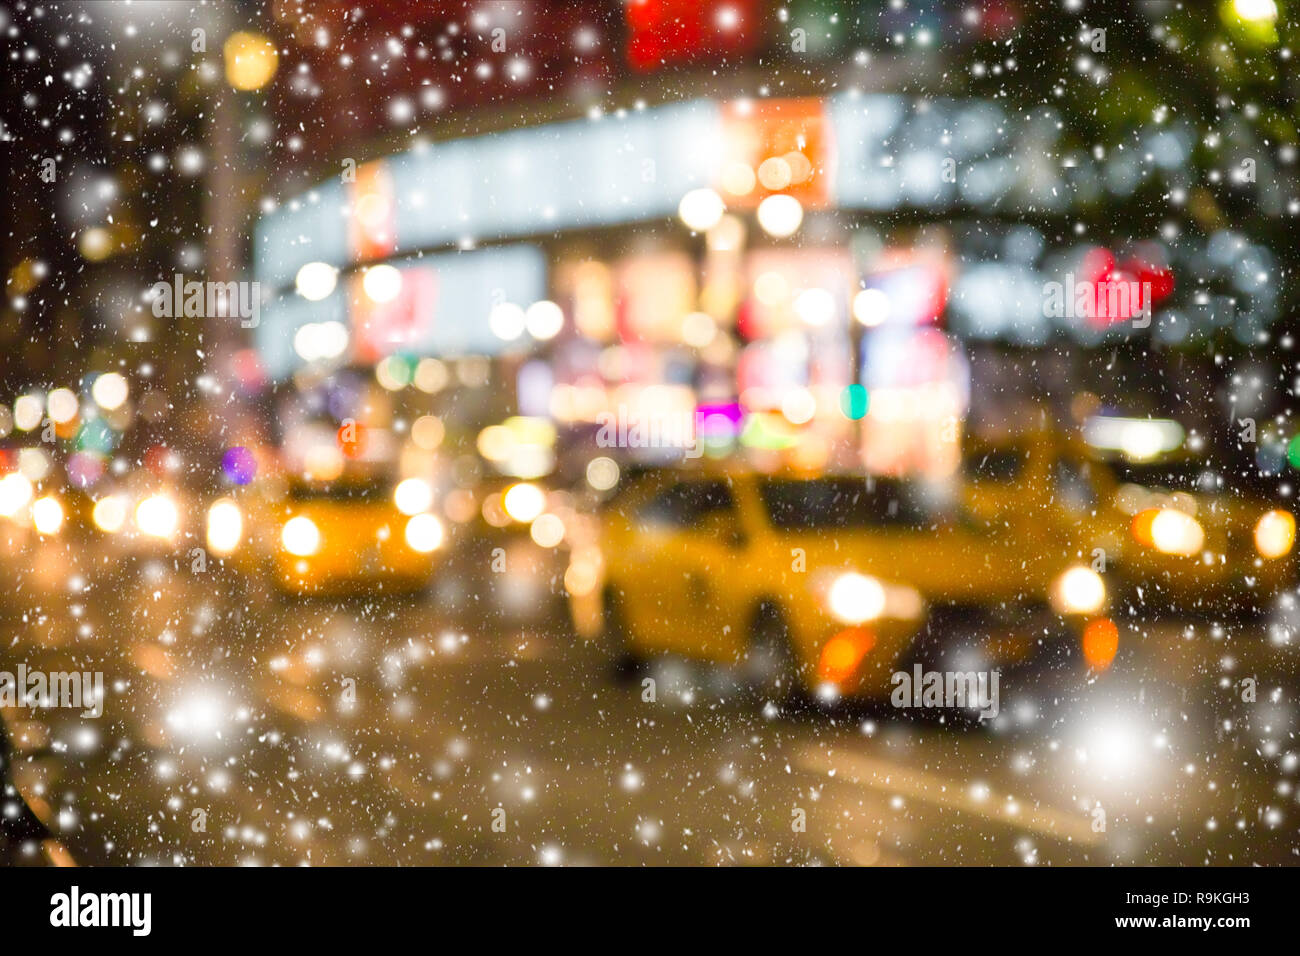 6cf7b1f16707c Defocused blur New York City Manhattan street scene with yellow taxi cabs  and snowflakes falling during winter snow storm